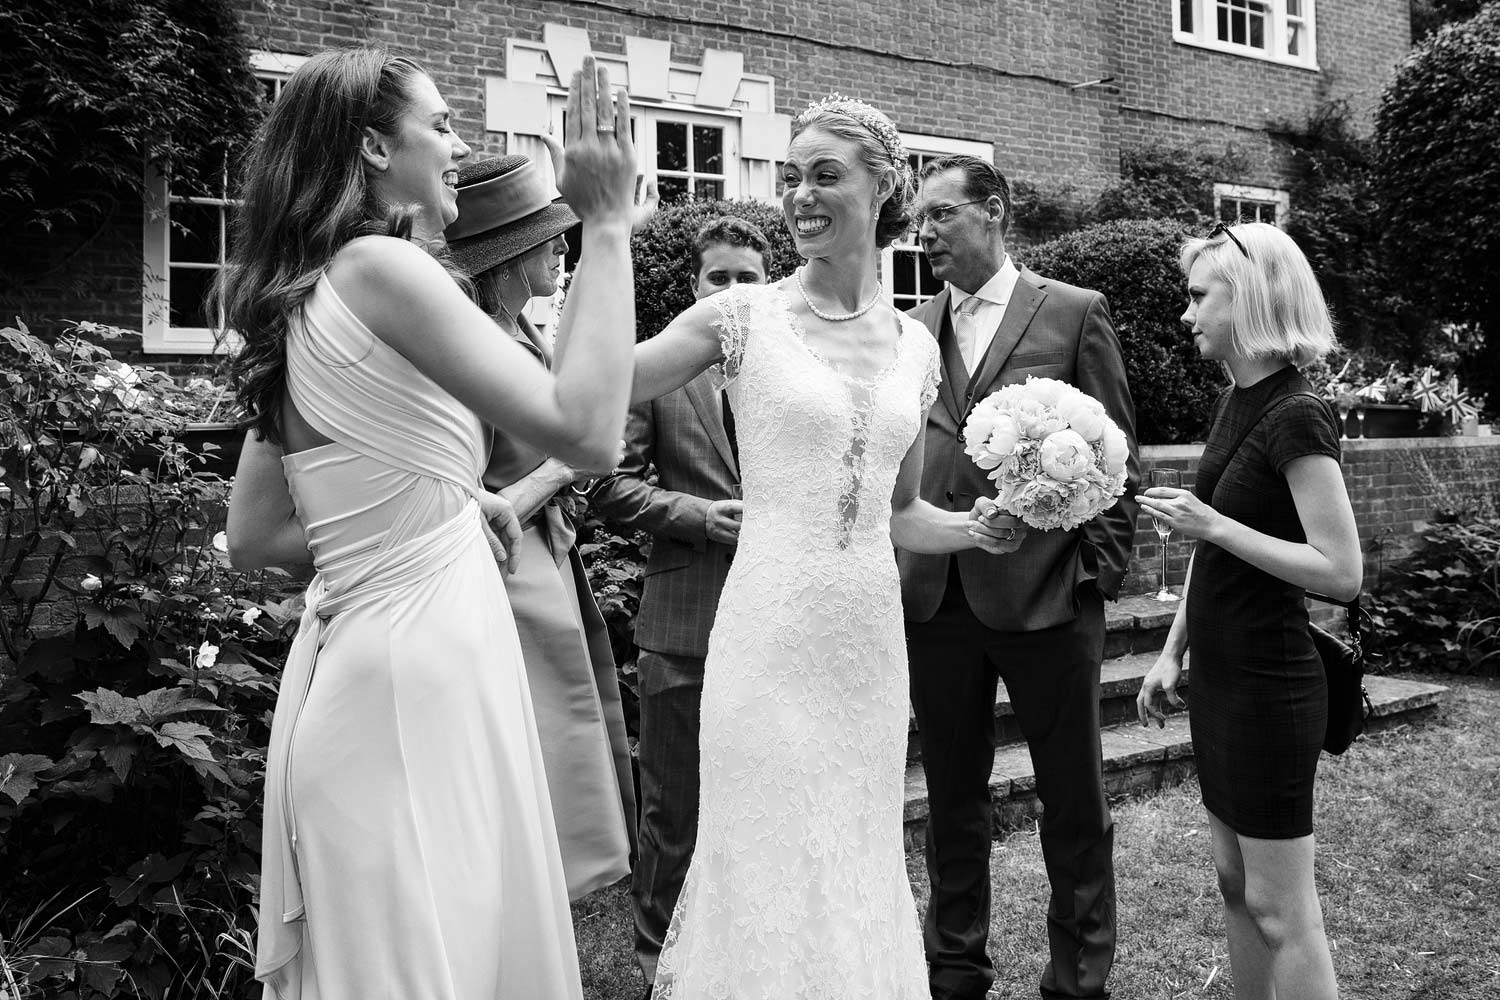 The bride high fives her bridesmaid at her wedding at the Vicarage in Kensington - London wedding photographer